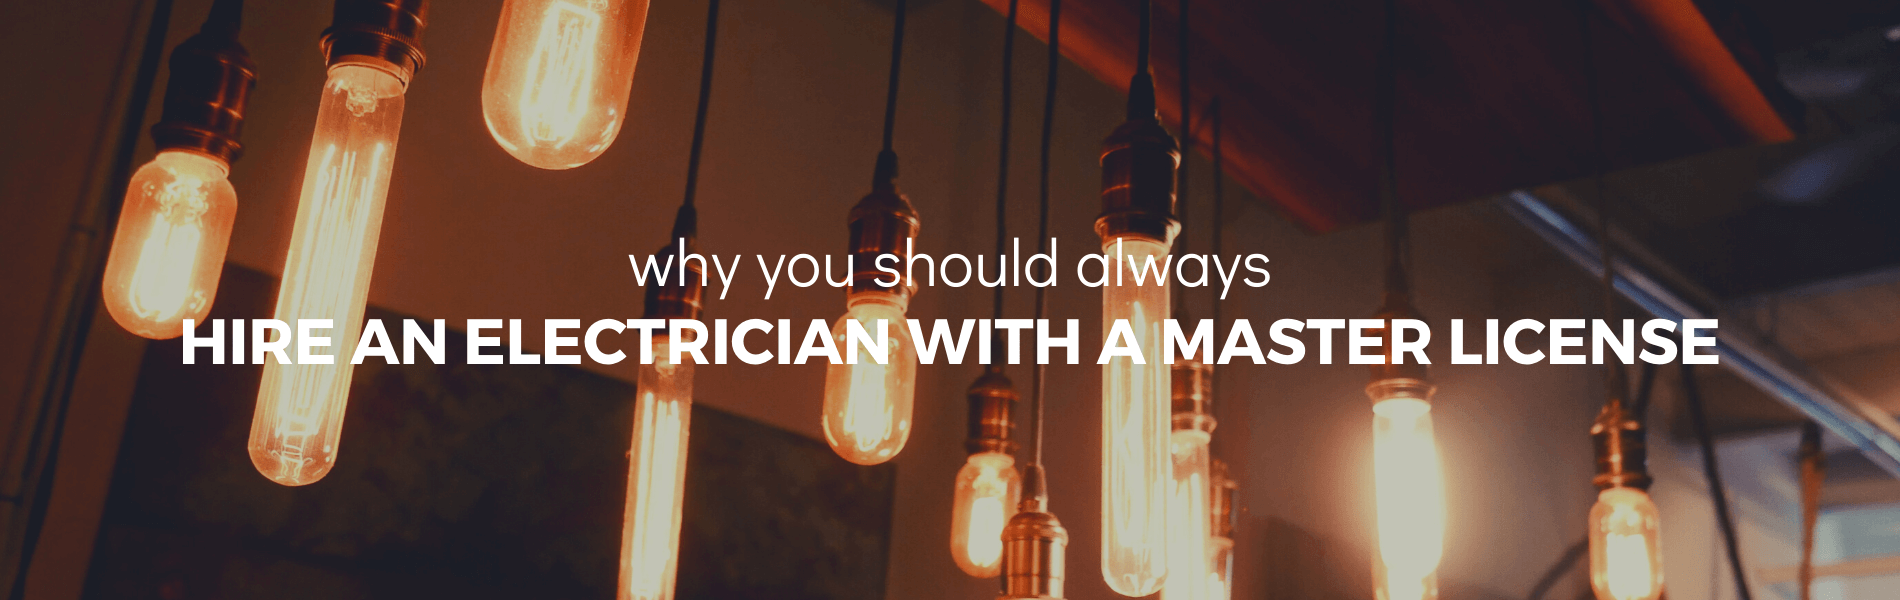 why you should always hire a master electrician